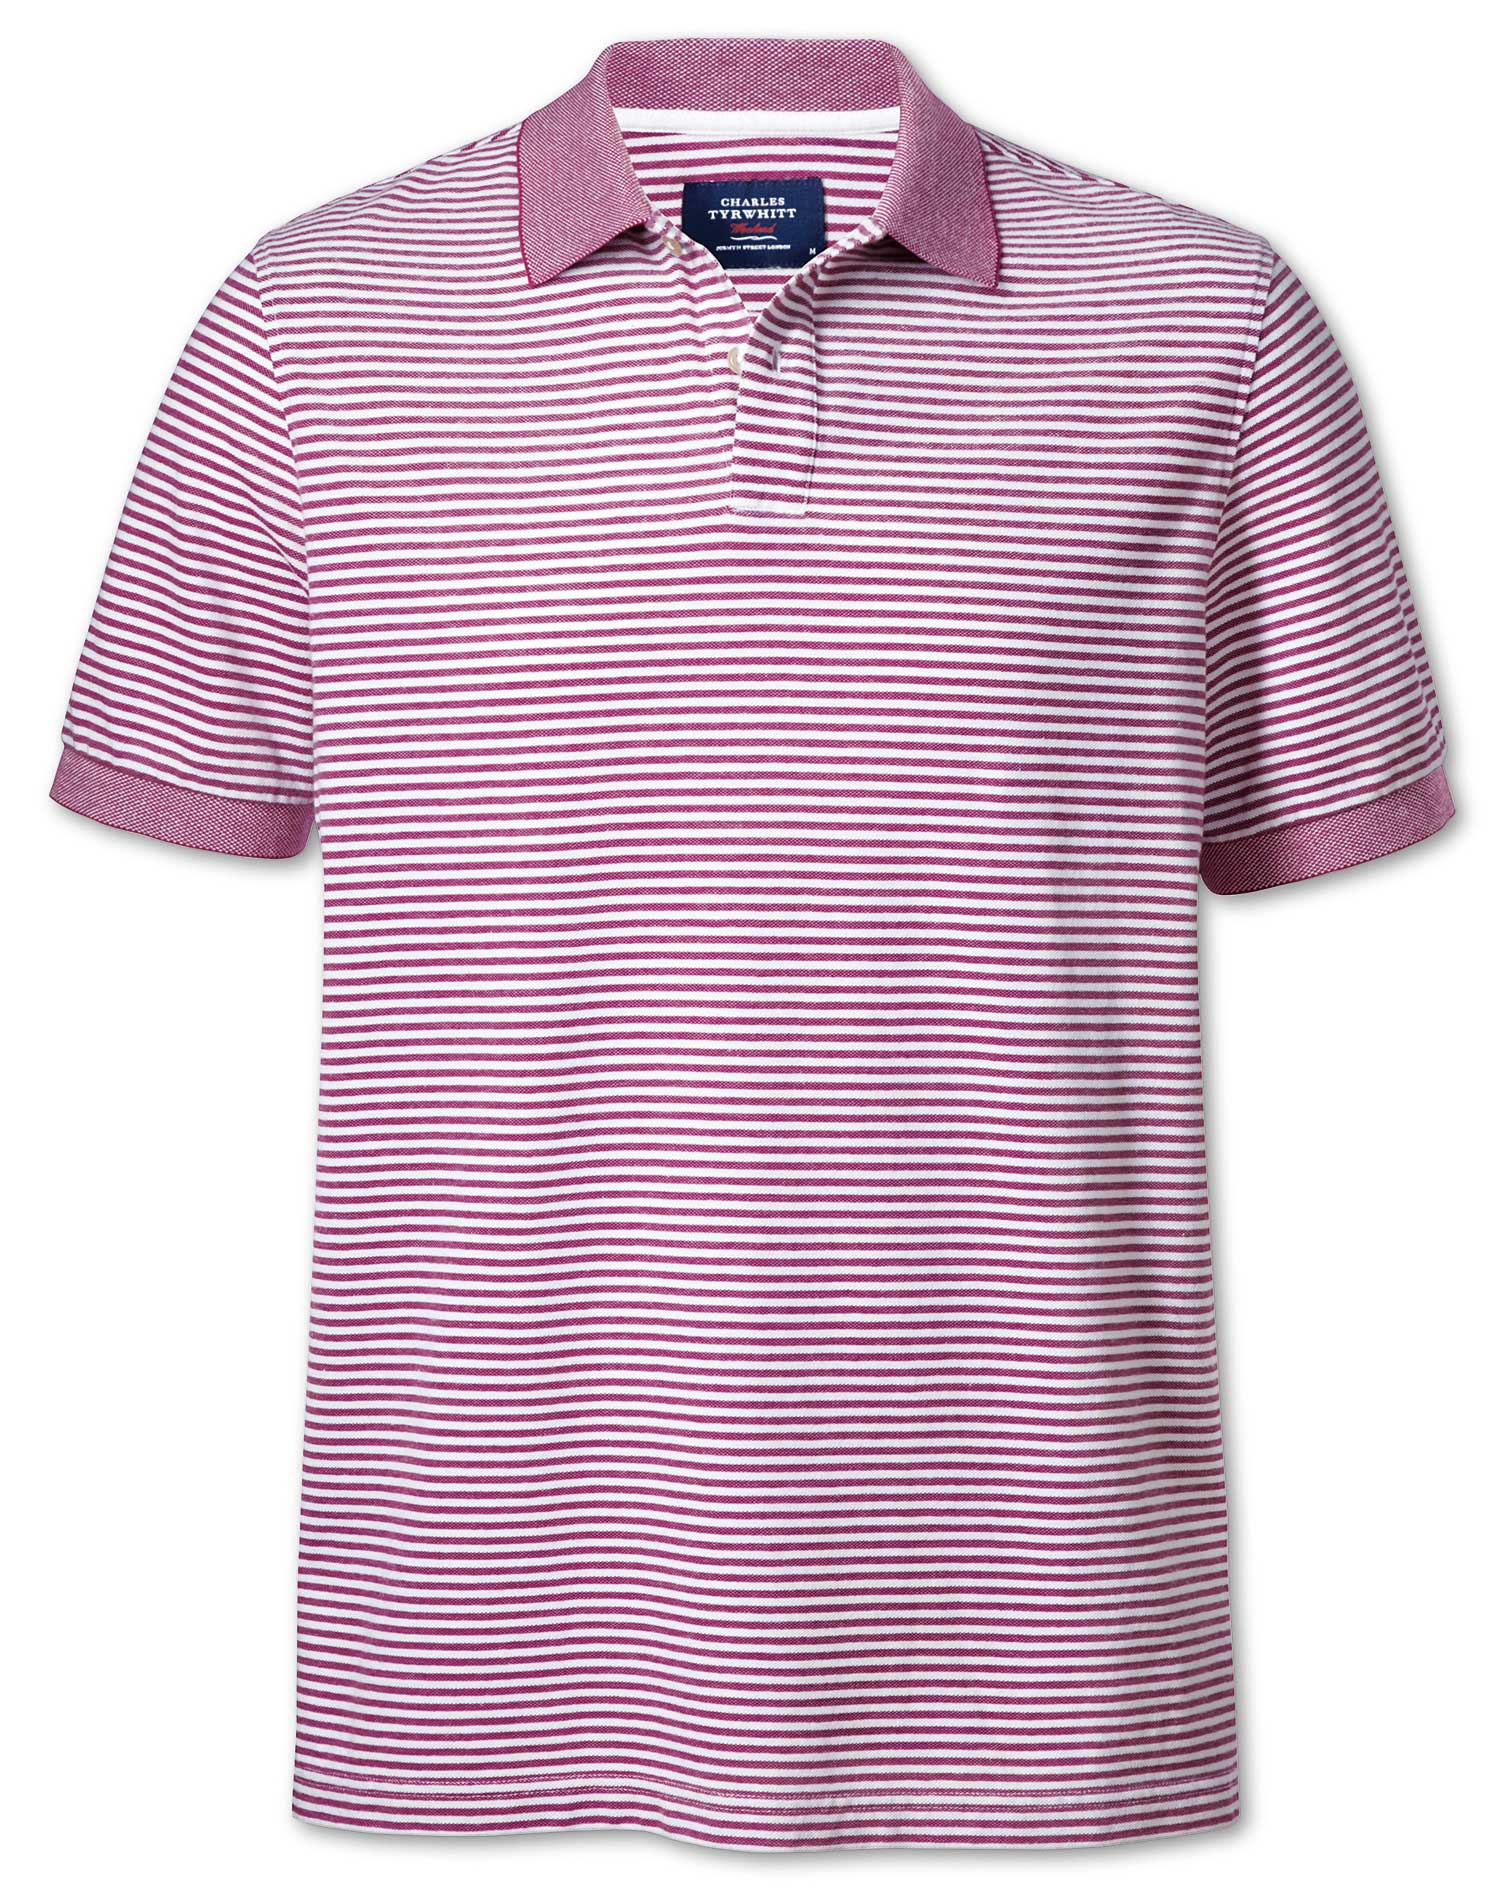 Berry and White Stripe Oxford Cotton Polo Size XS by Charles Tyrwhitt